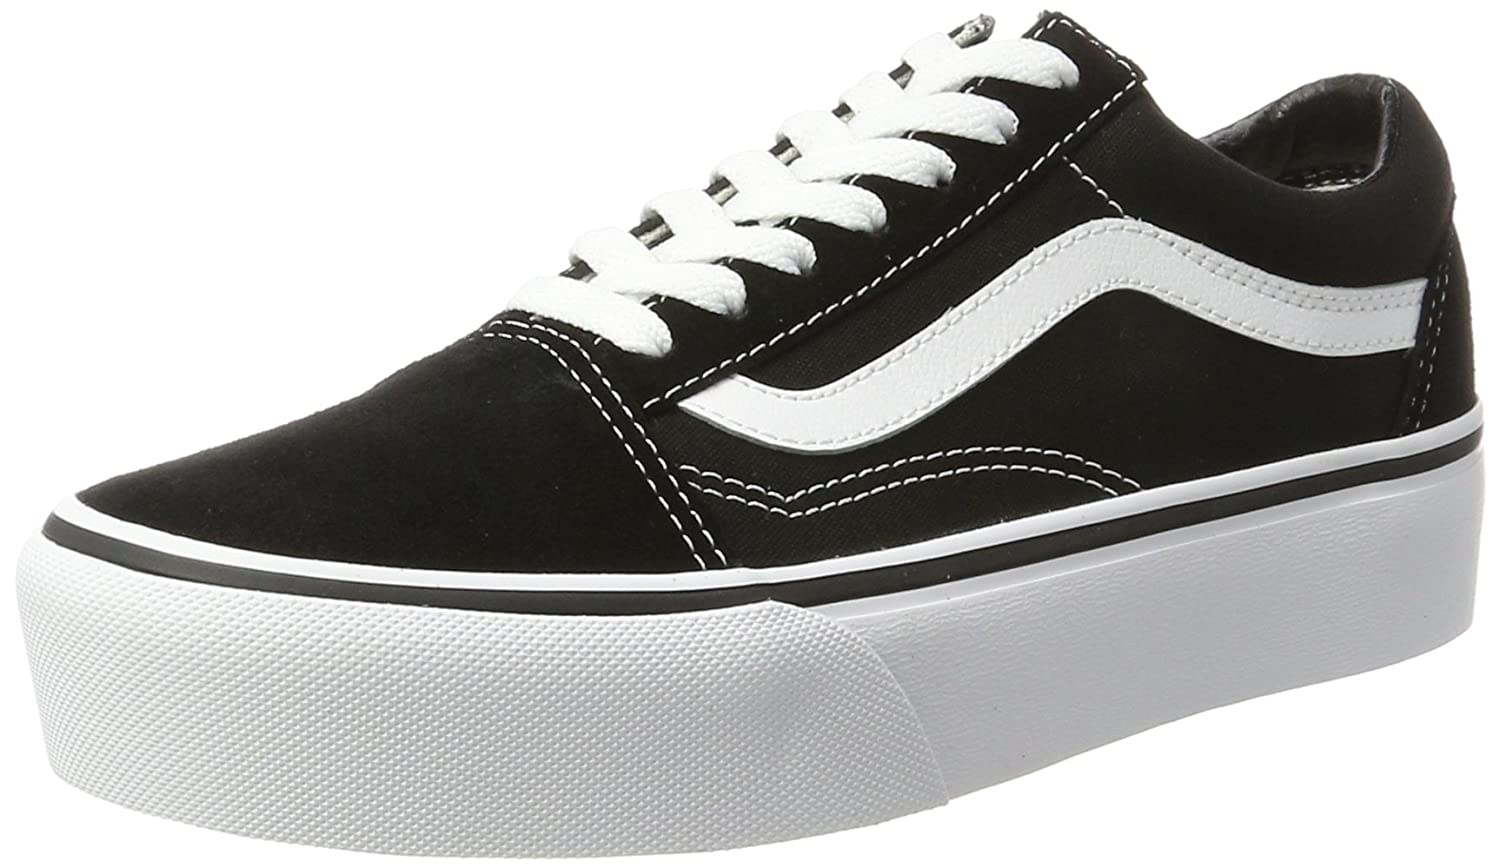 Vans Women s s Old Skool Platform Trainers  Amazon.co.uk  Shoes   Bags 36454274a